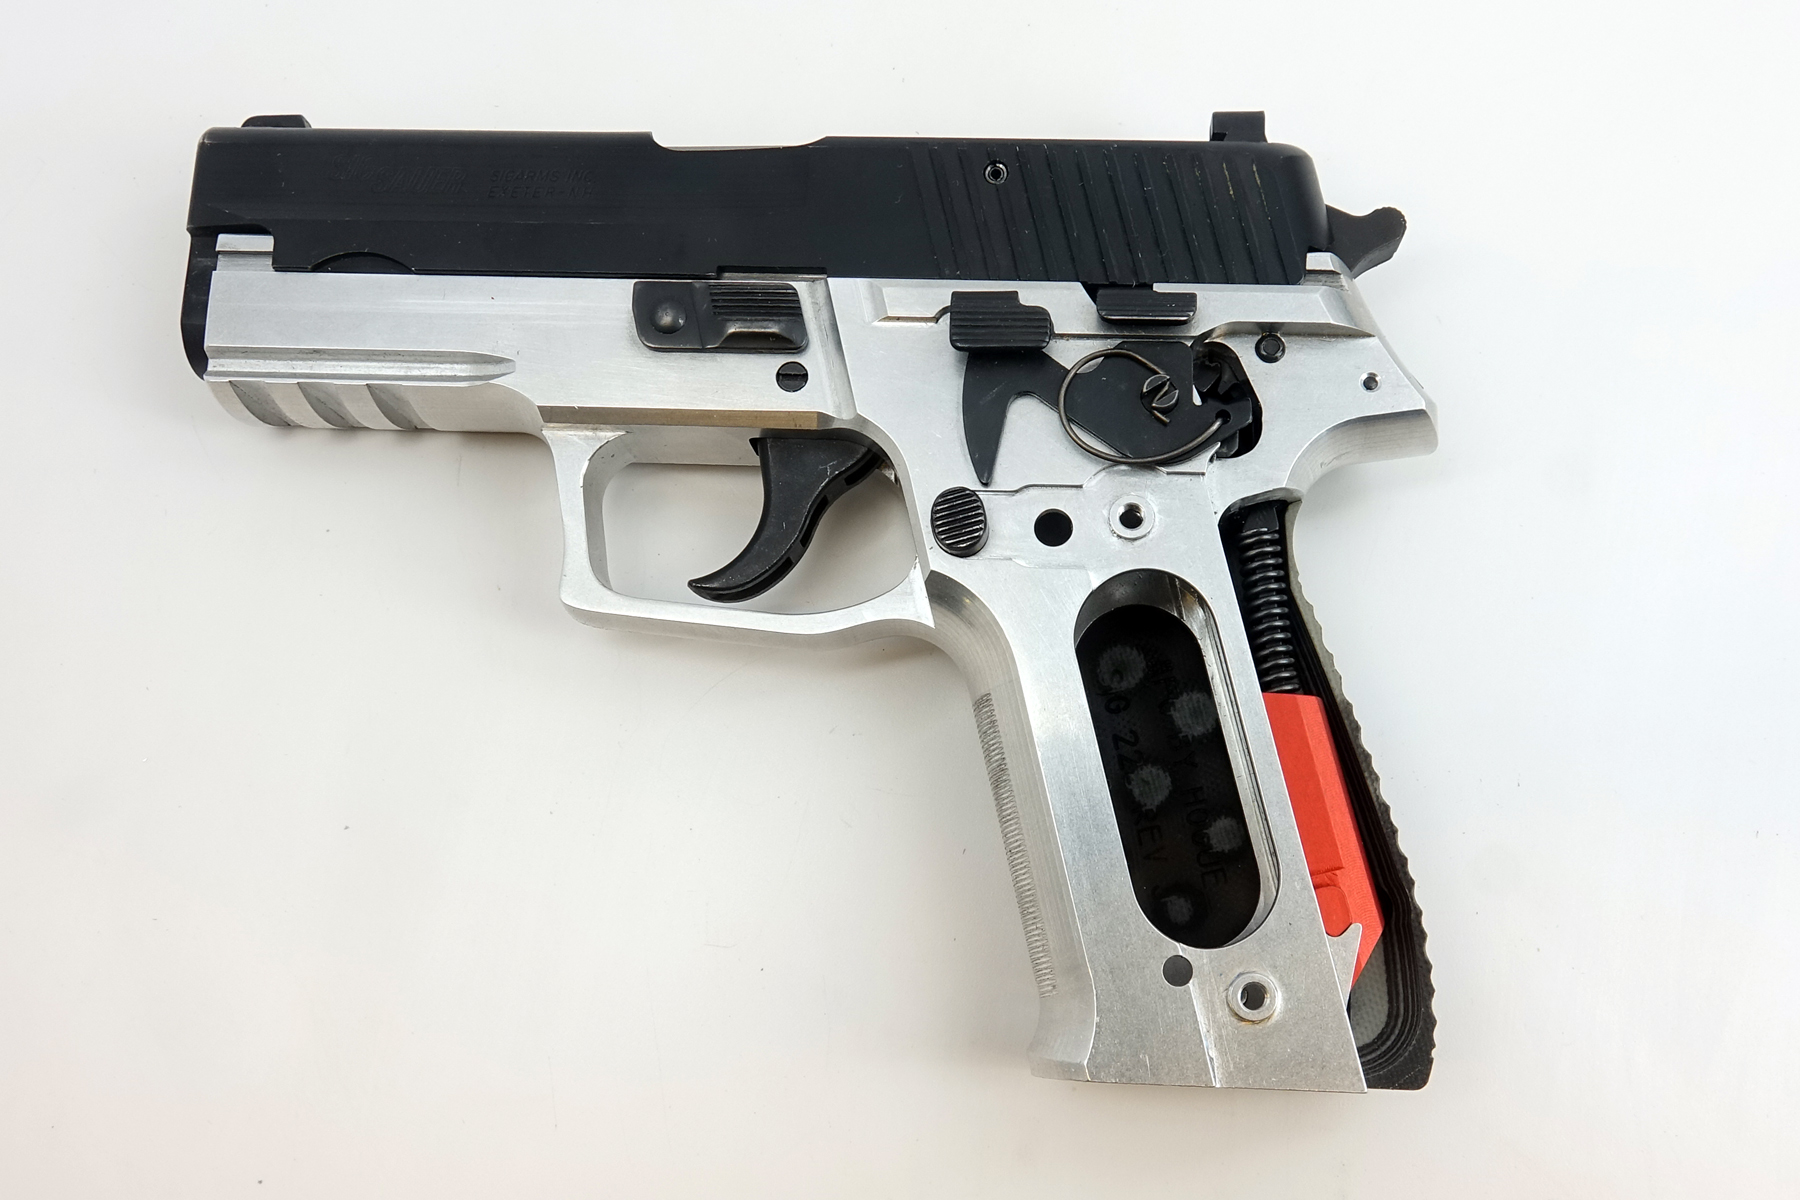 I like the longer grip of the 226 a lot. I think this is the route I am going to go for my personal collection, P226 frame and 229 slide so all my parts will be interchangeable with my 229s except the locking insert and hammer stop. I can use 226 mags in both.